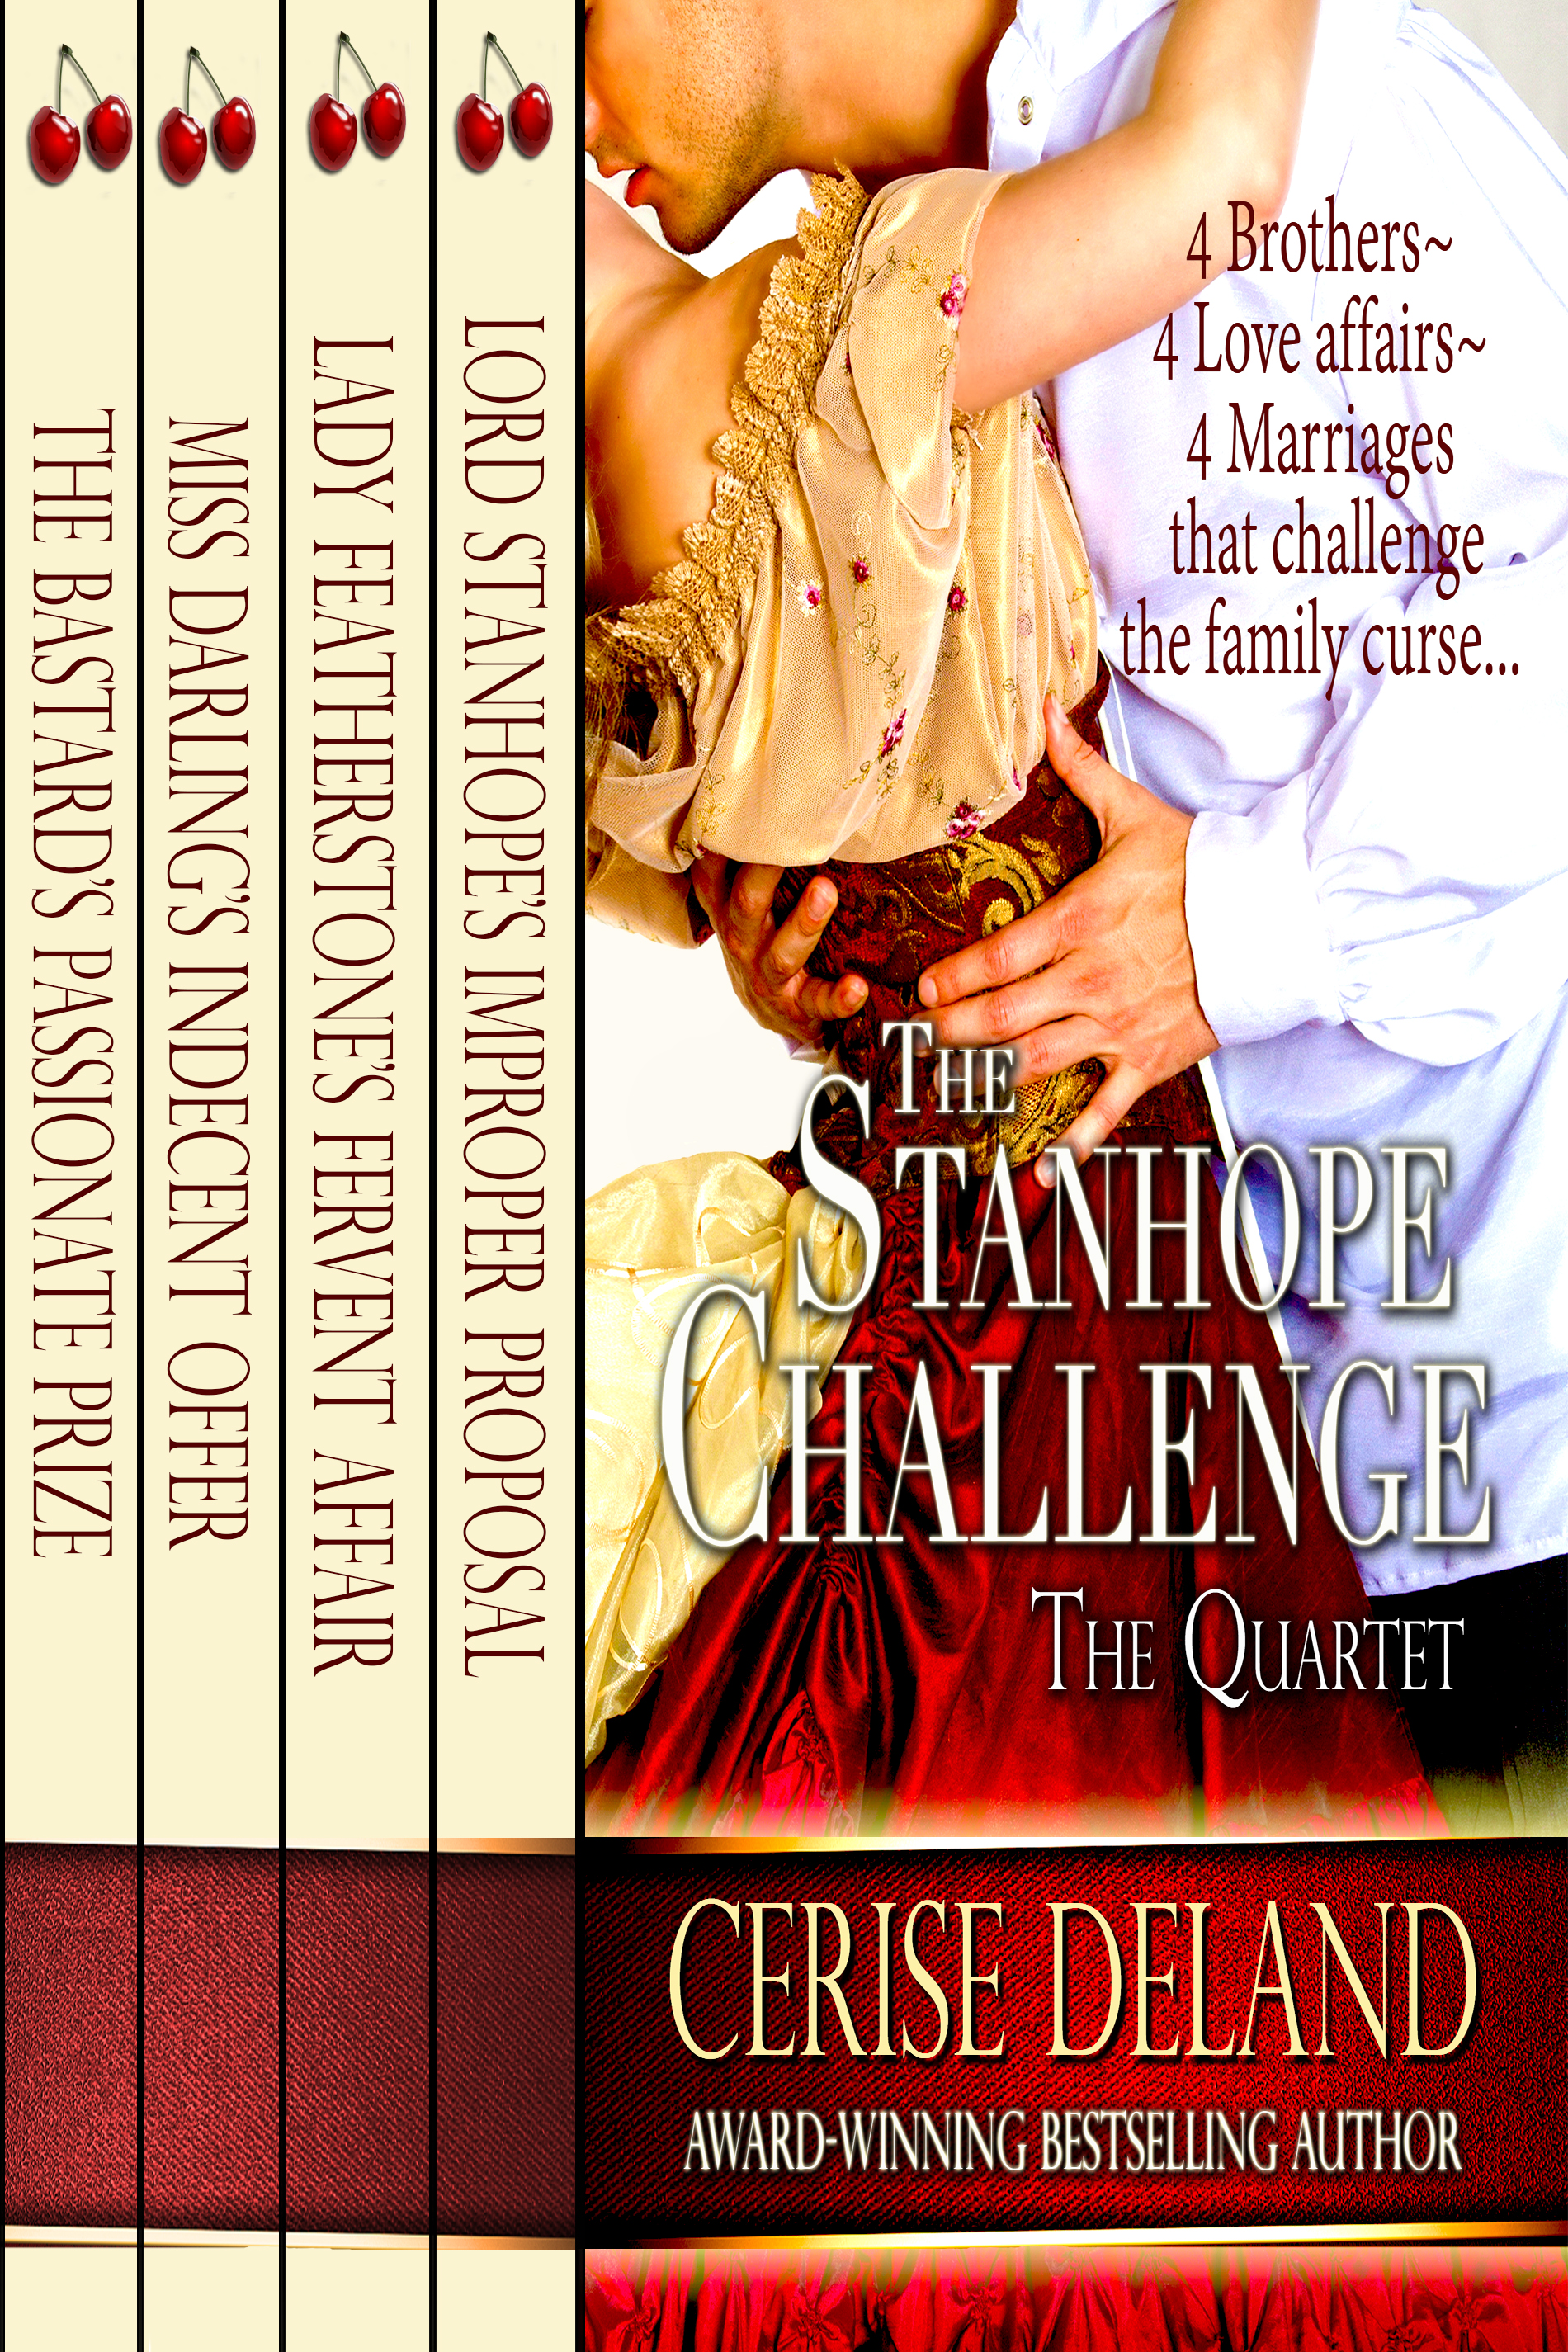 The Stanhope Challenge an ARe Best Seller!